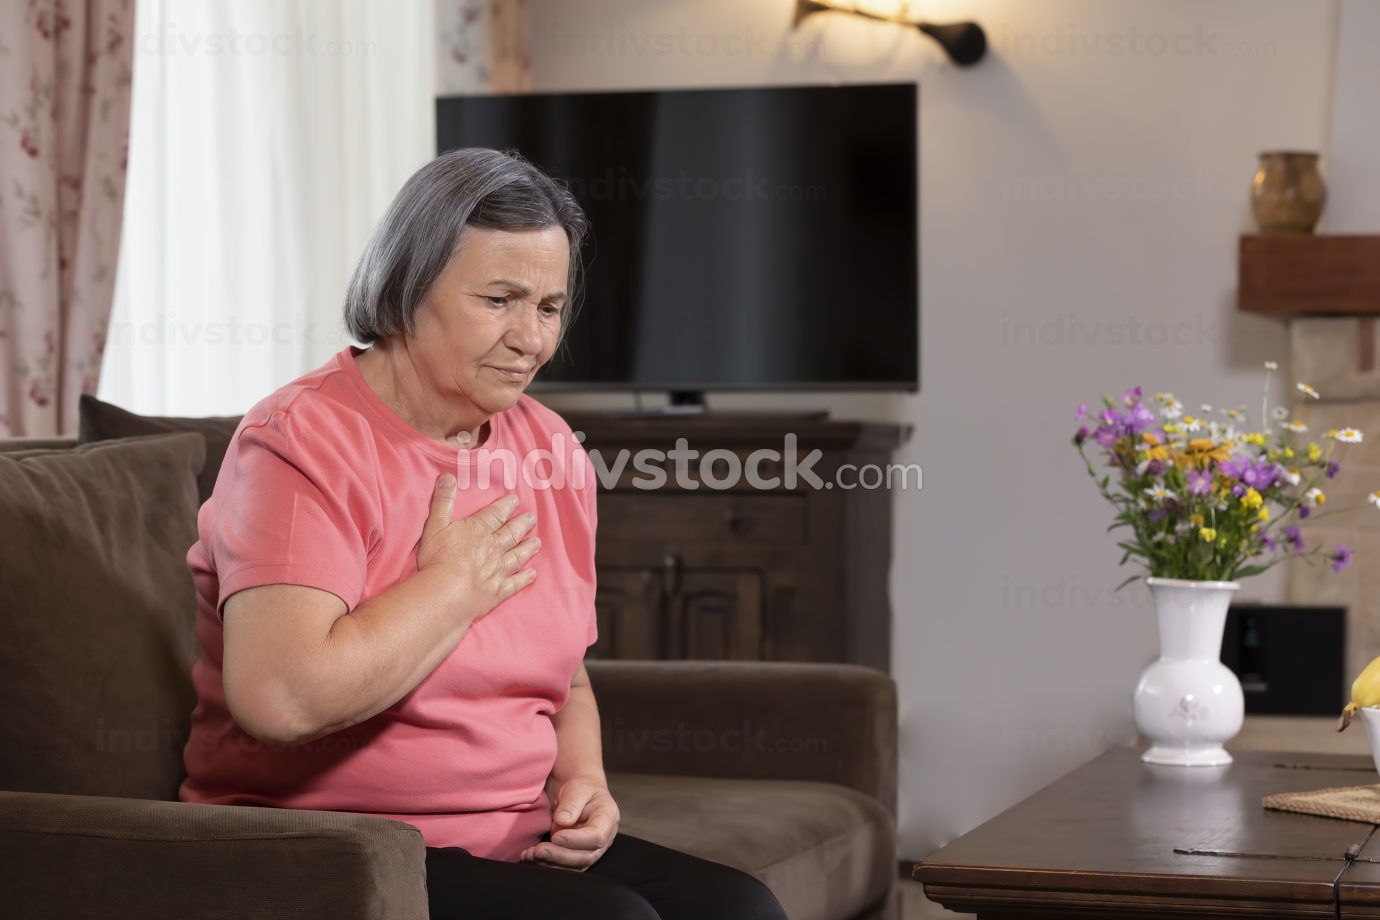 Elderly woman having a heart attack at home